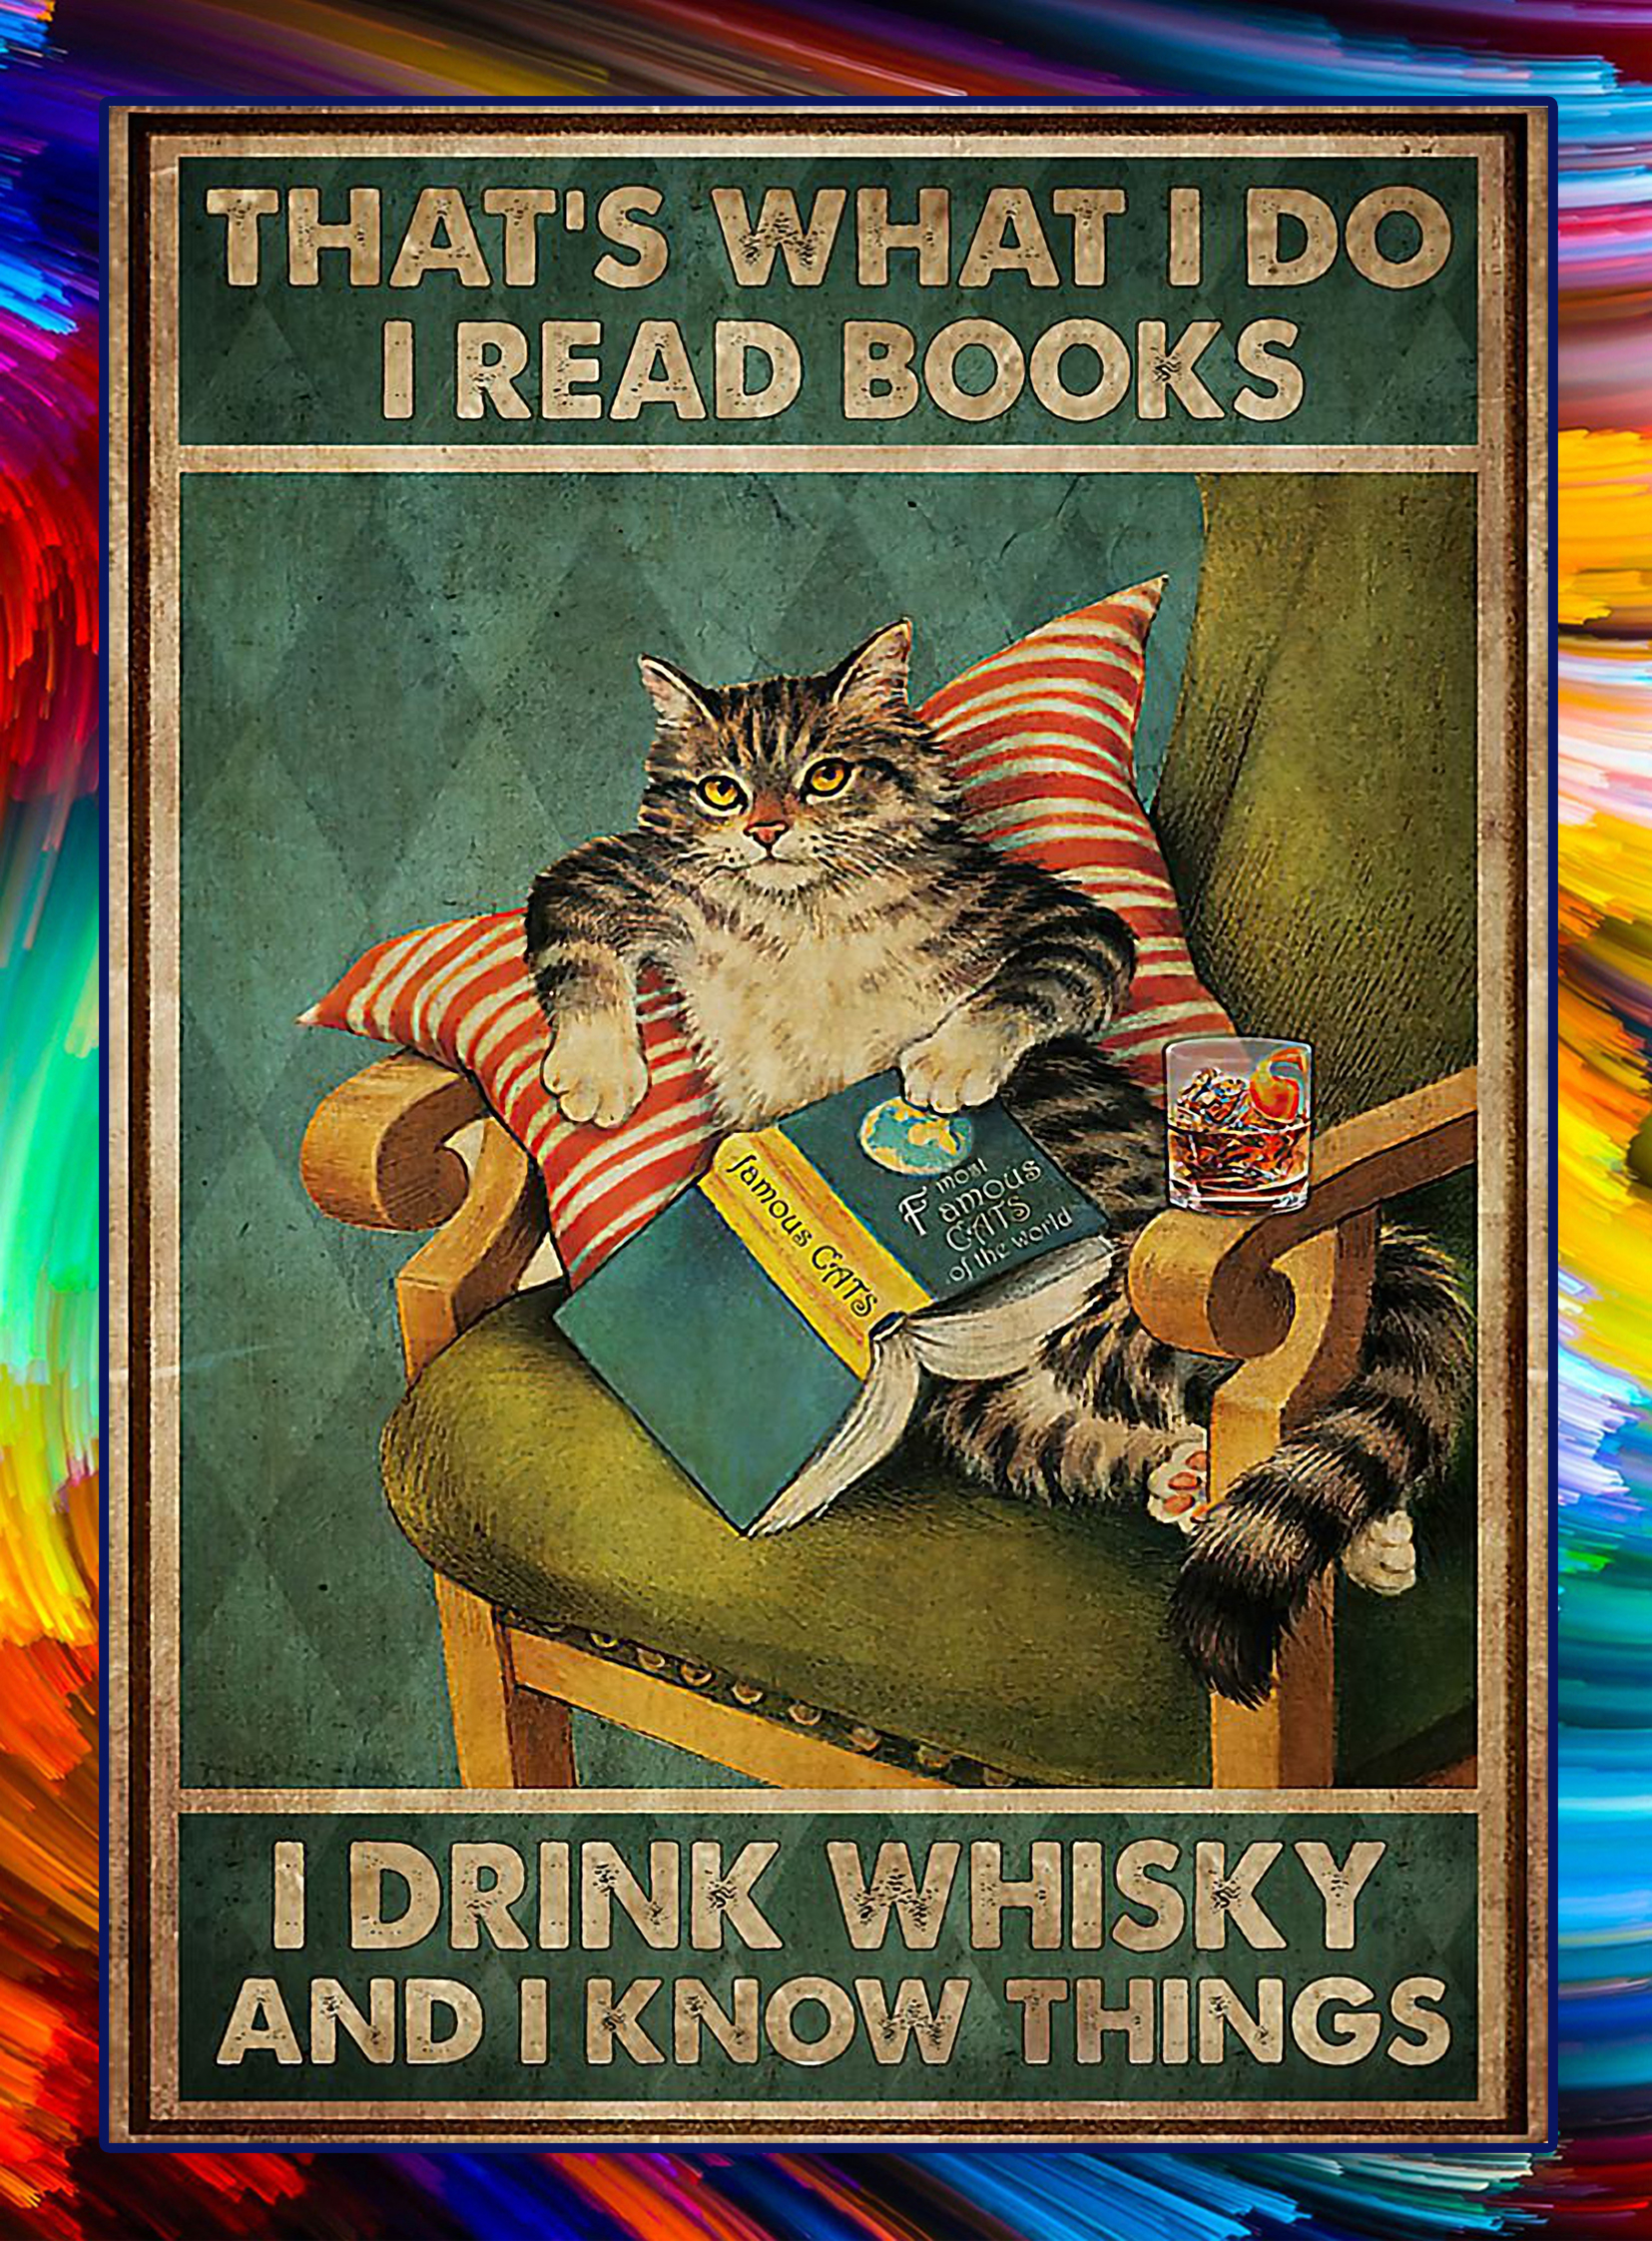 Cat that's what I do I read books I drink whisky and I know things poster - A4